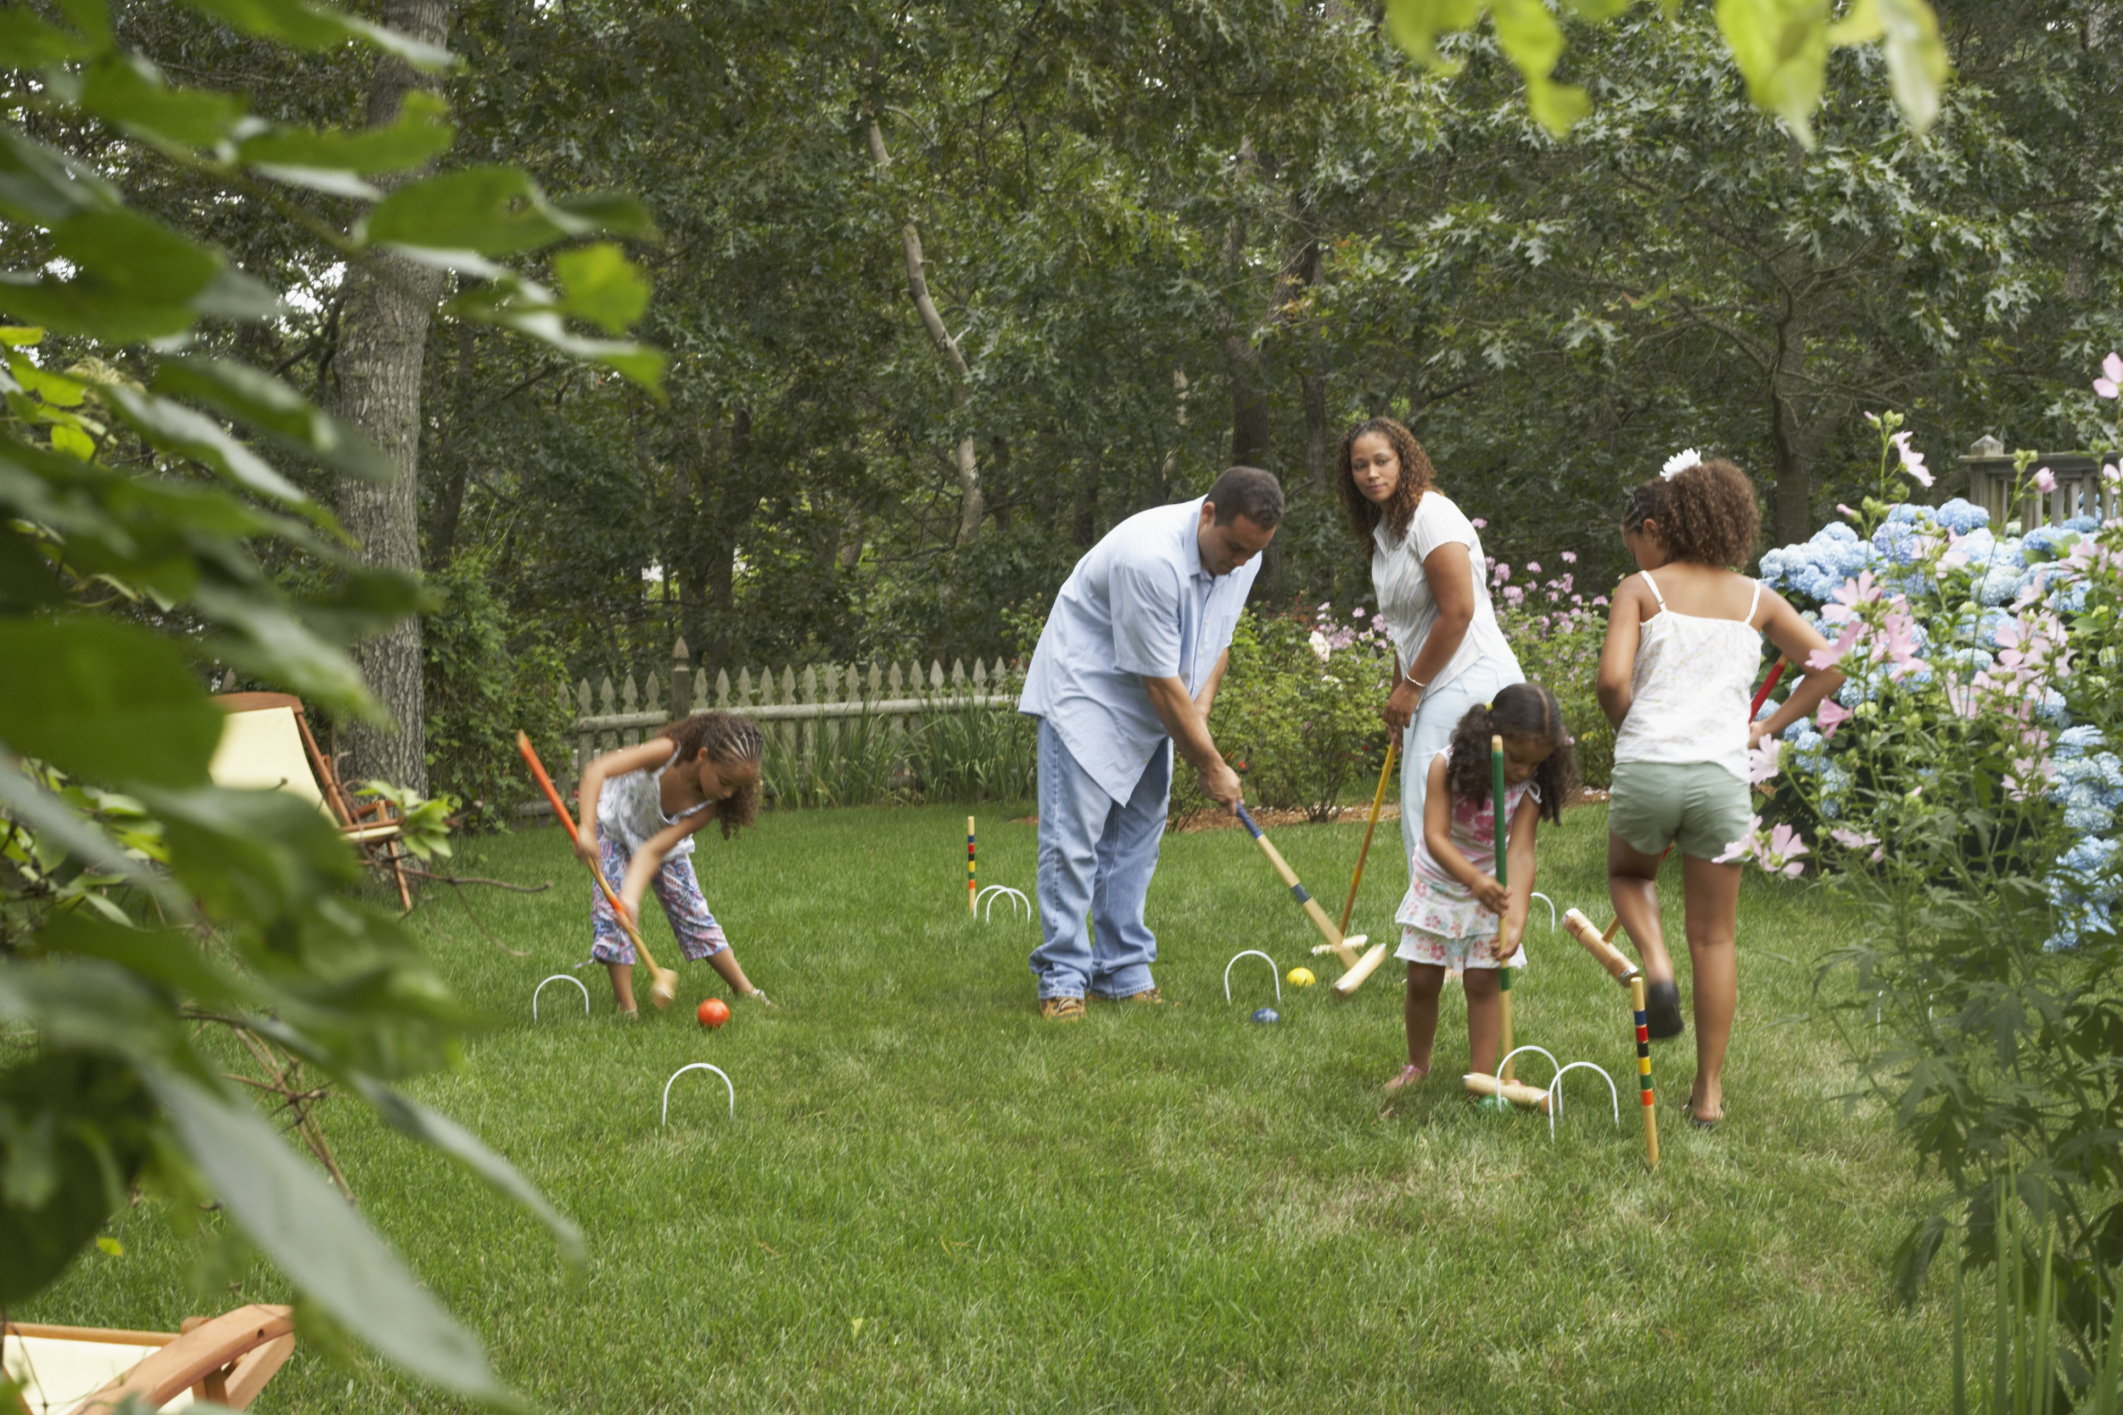 kupper automotive 5 unique games you can play in your backyard